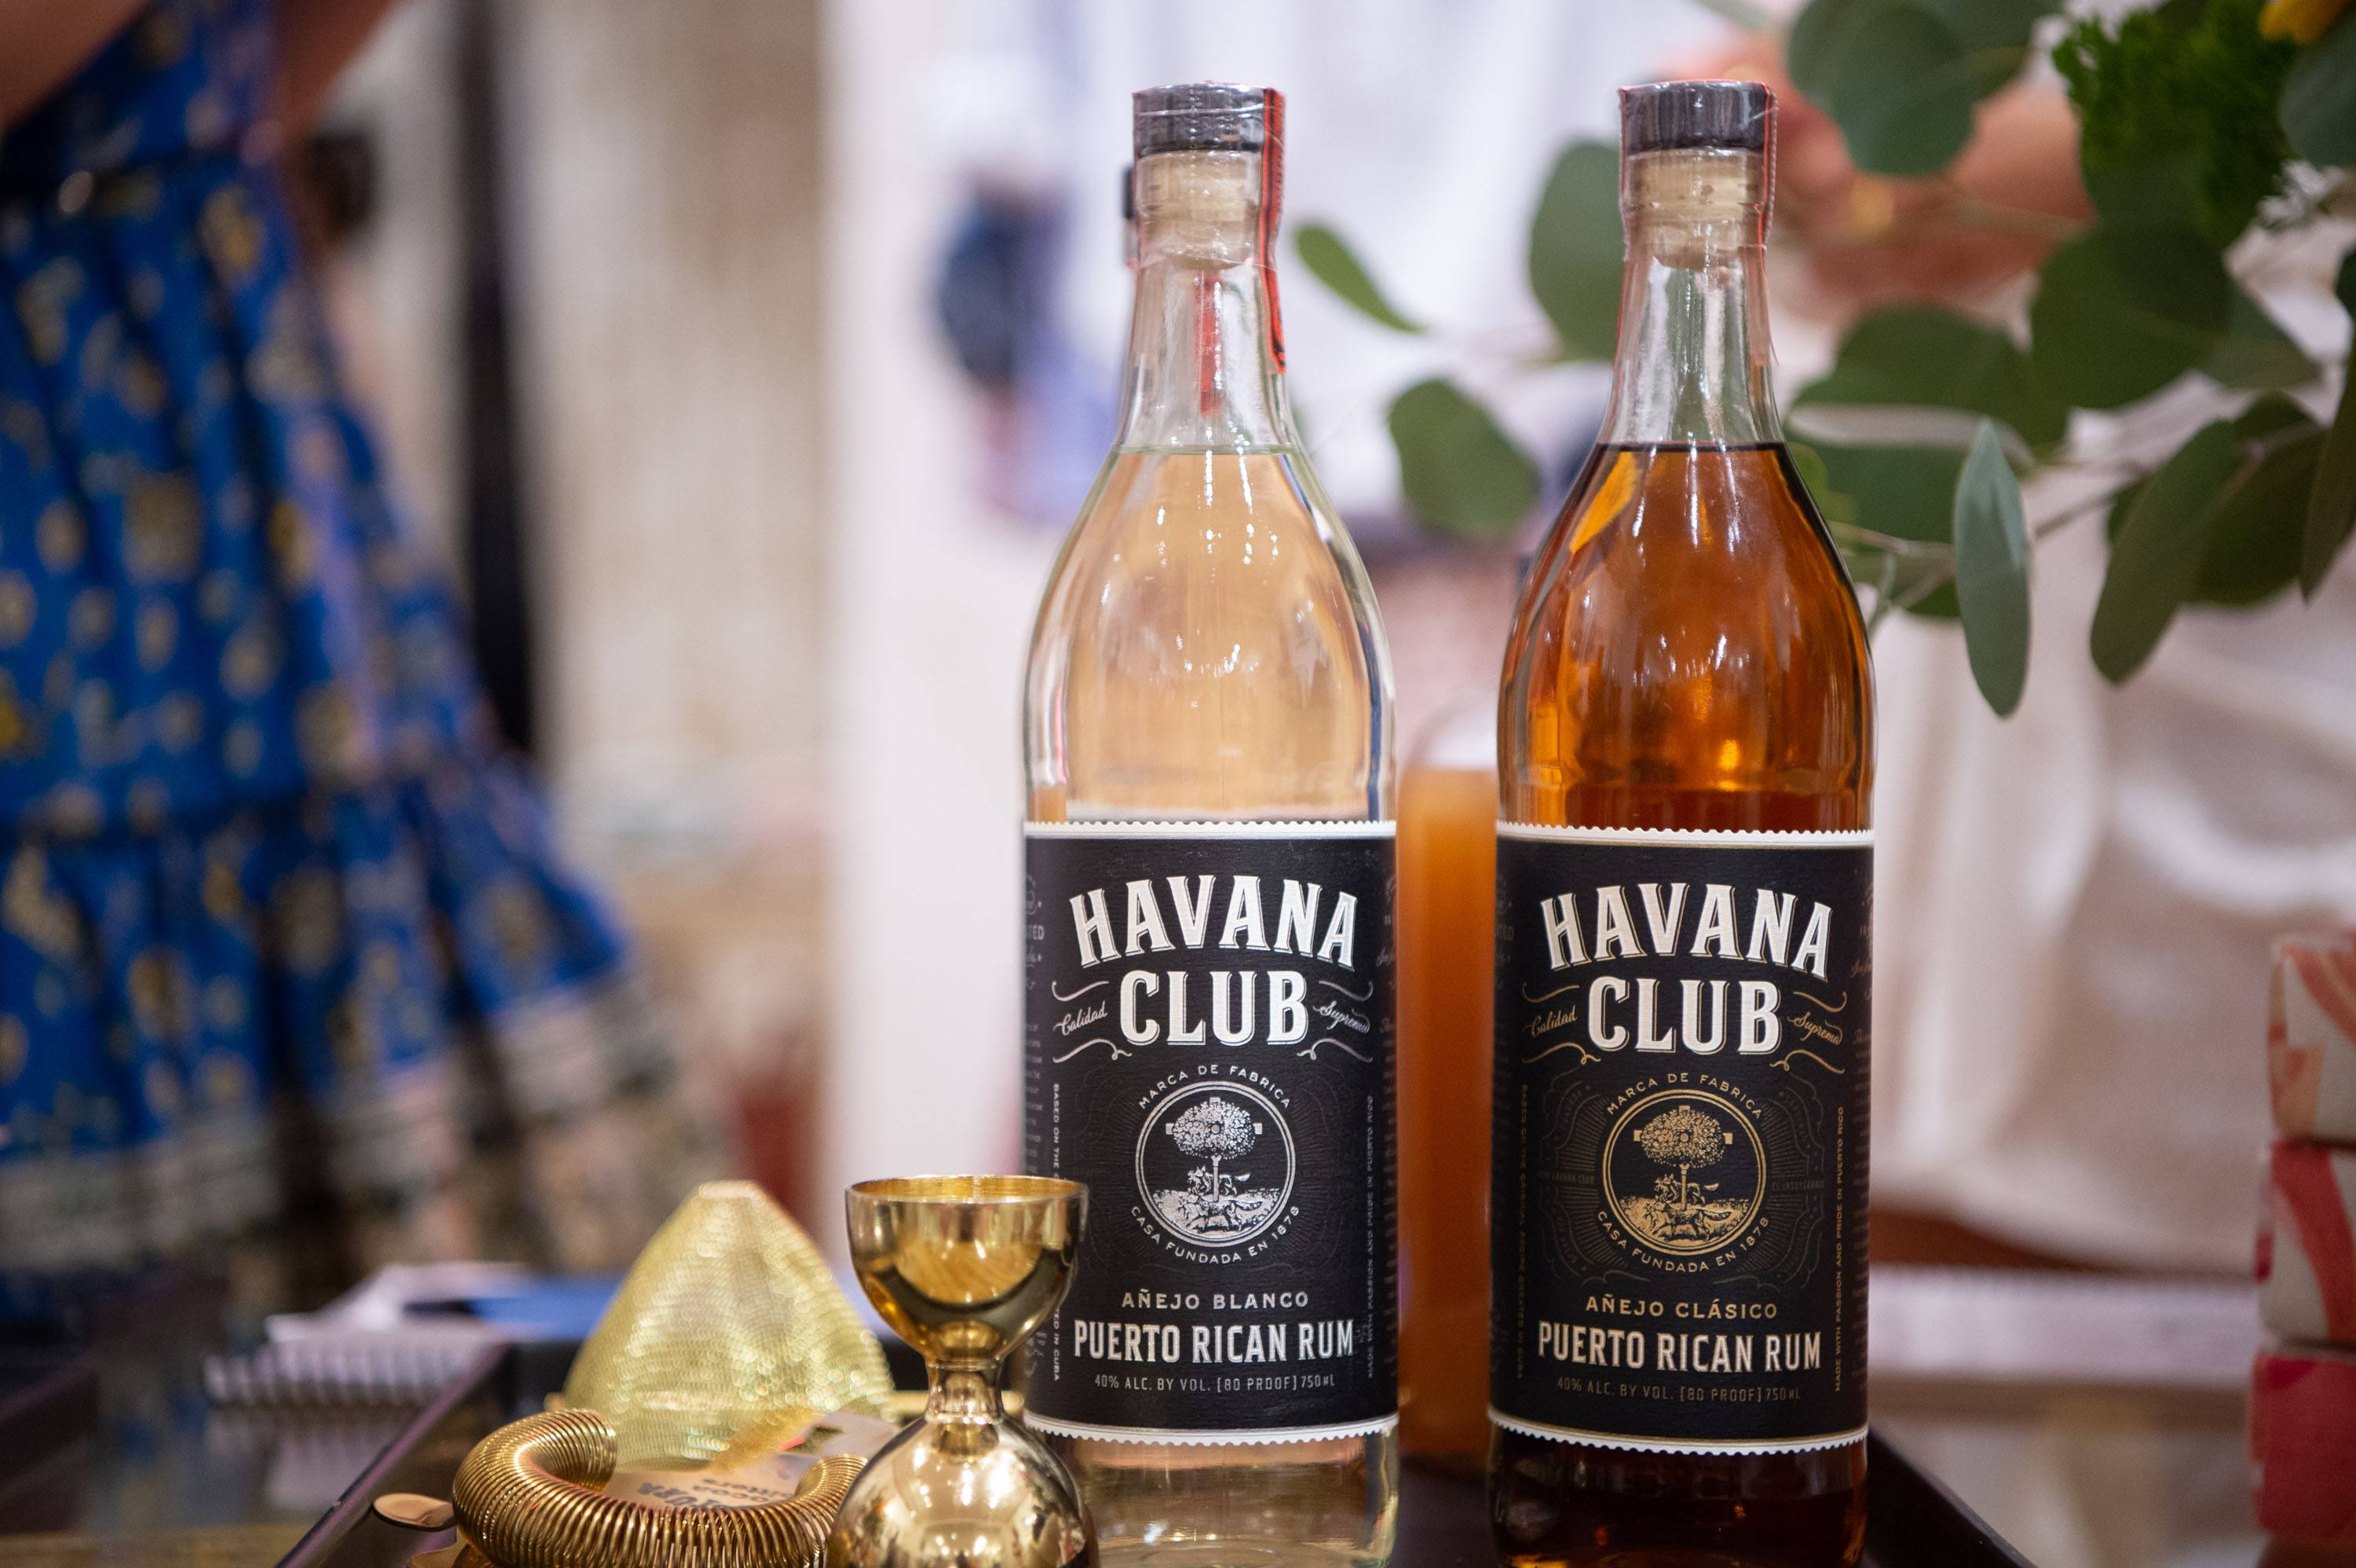 Havana Club Puerto Rican rum pictured with cocktail strainer and shot measuring cup